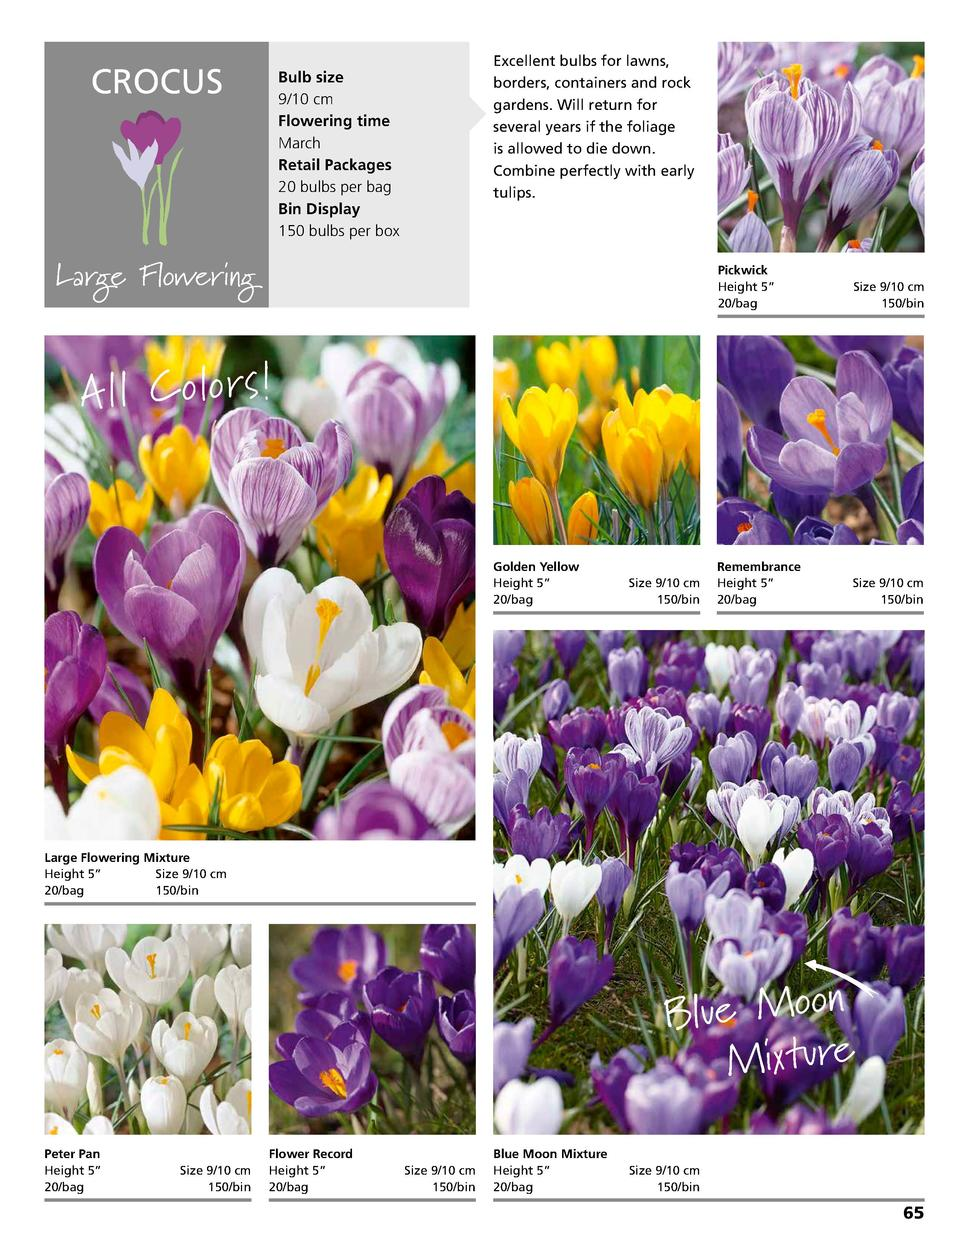 CROCUS  Bulb size 9 10 cm Flowering time March Retail Packages 20 bulbs per bag Bin Display 150 bulbs per box  Excellent b...